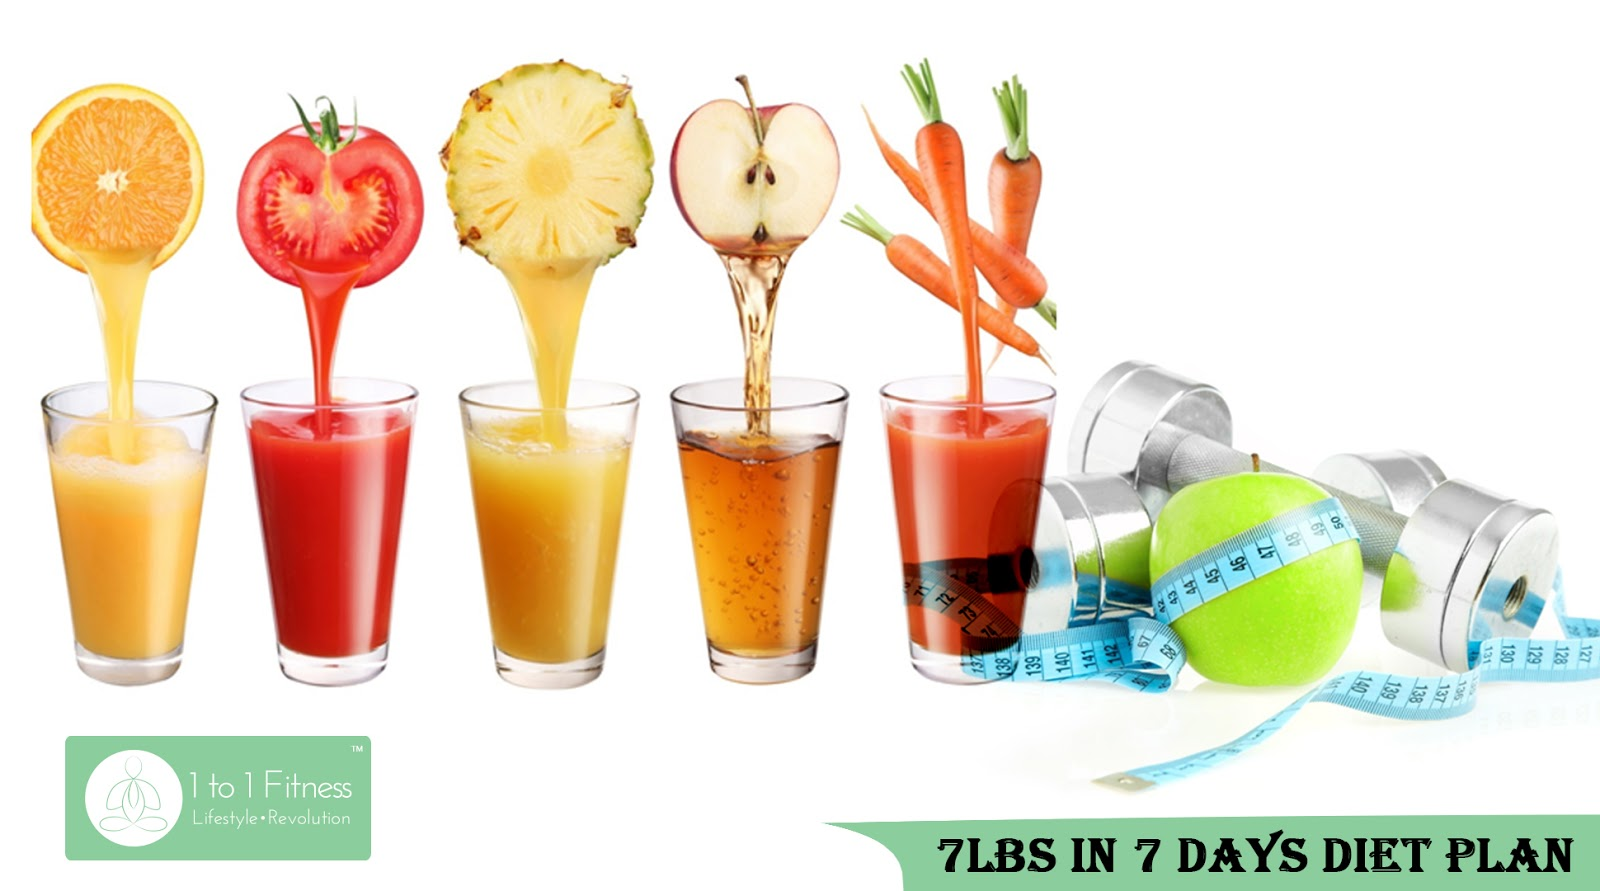 30 days weight loss eating plan photo 7